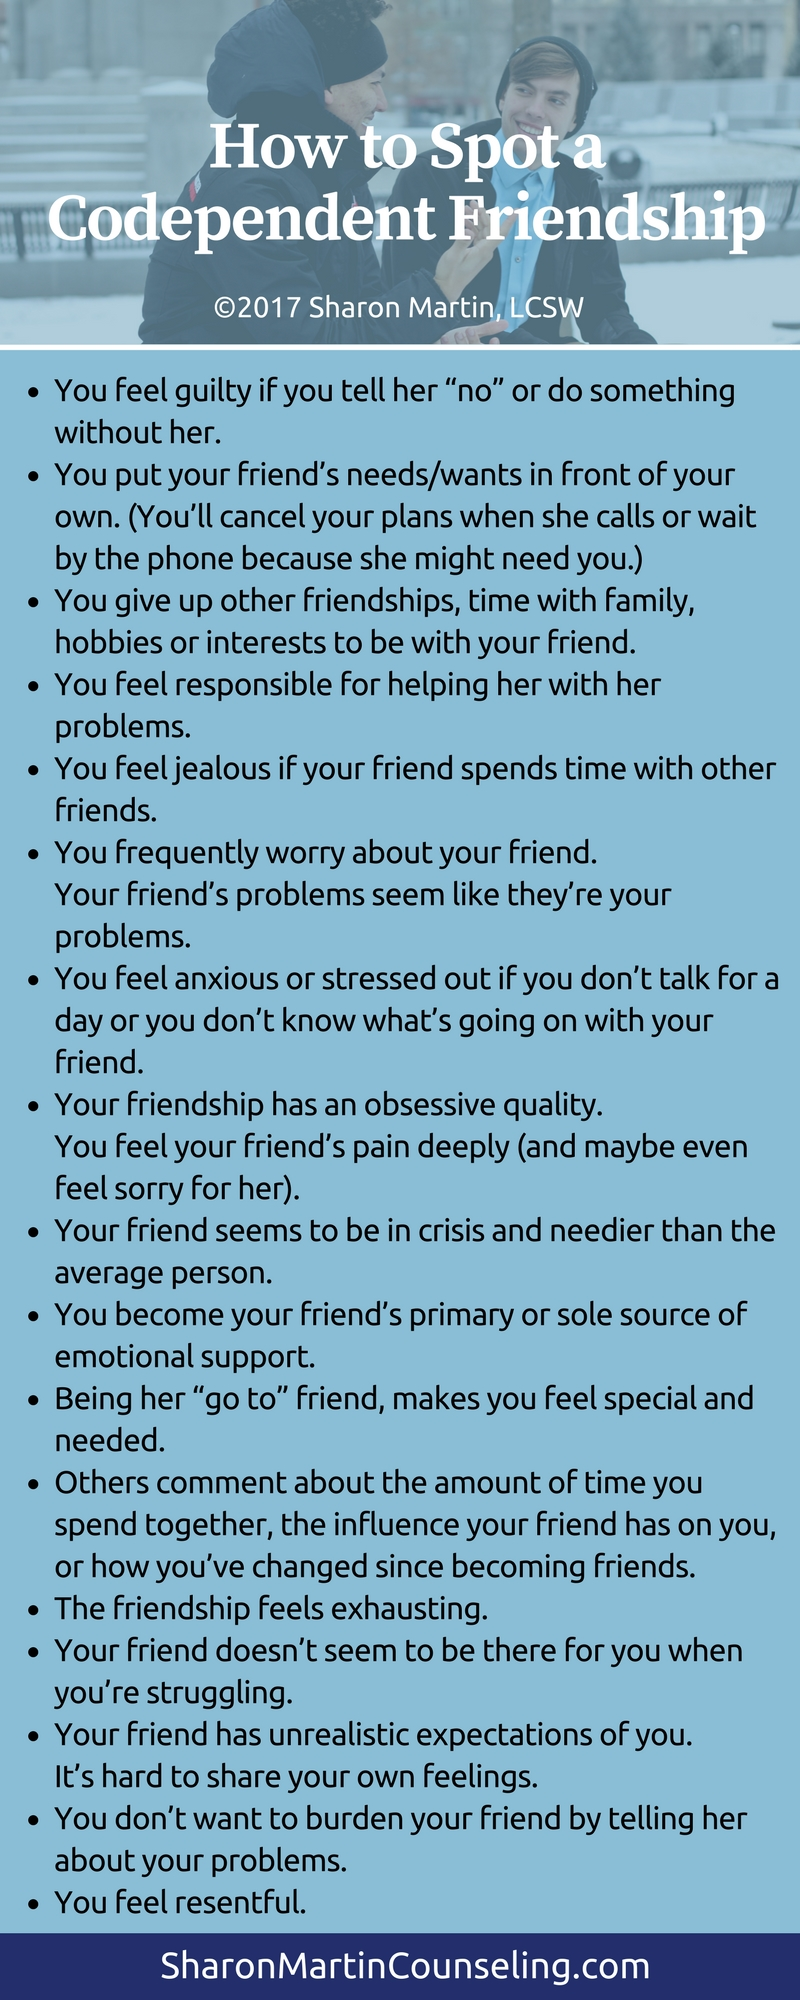 How to spot a codependent friendship. A codependent feels great at first; you feel close and connected and needed. But ultimately your needs aren't met and you feel guilty and resentful.